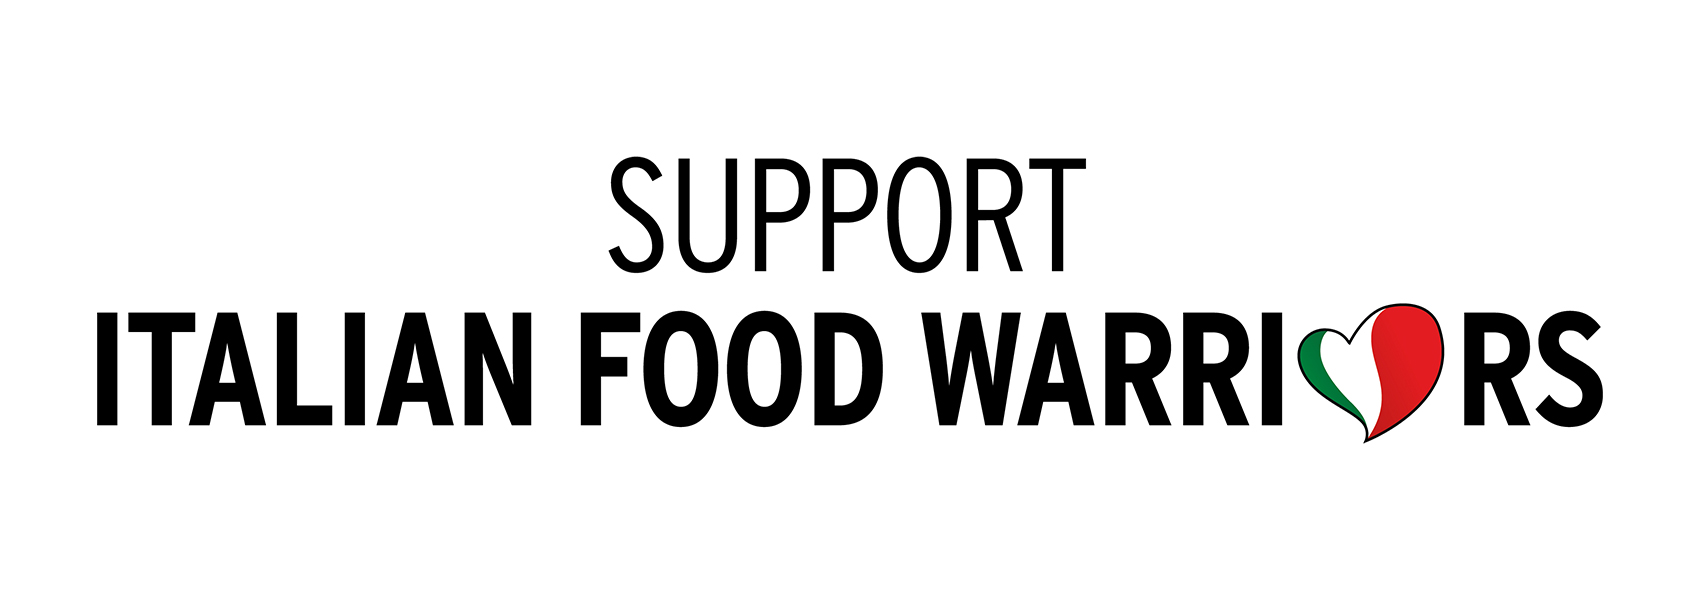 SUPPORT ITALIAN FOOD WARRIORS